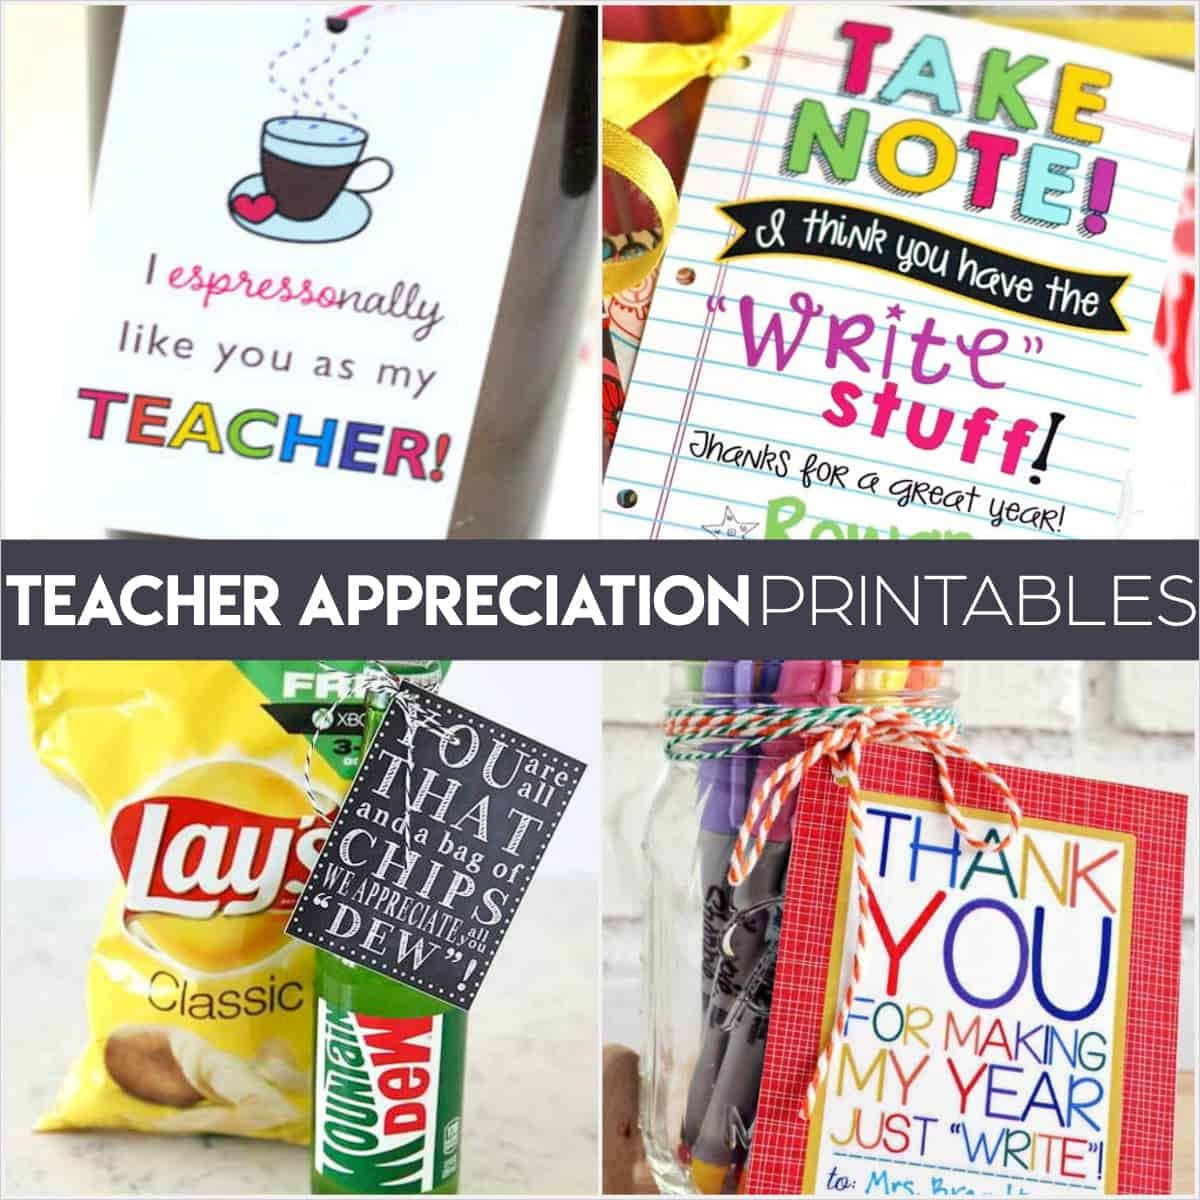 Teacher Appreciation Printables: Fun Free Tags For Teacher Gifts! - Take Note I Think You Are Awesome Free Printable